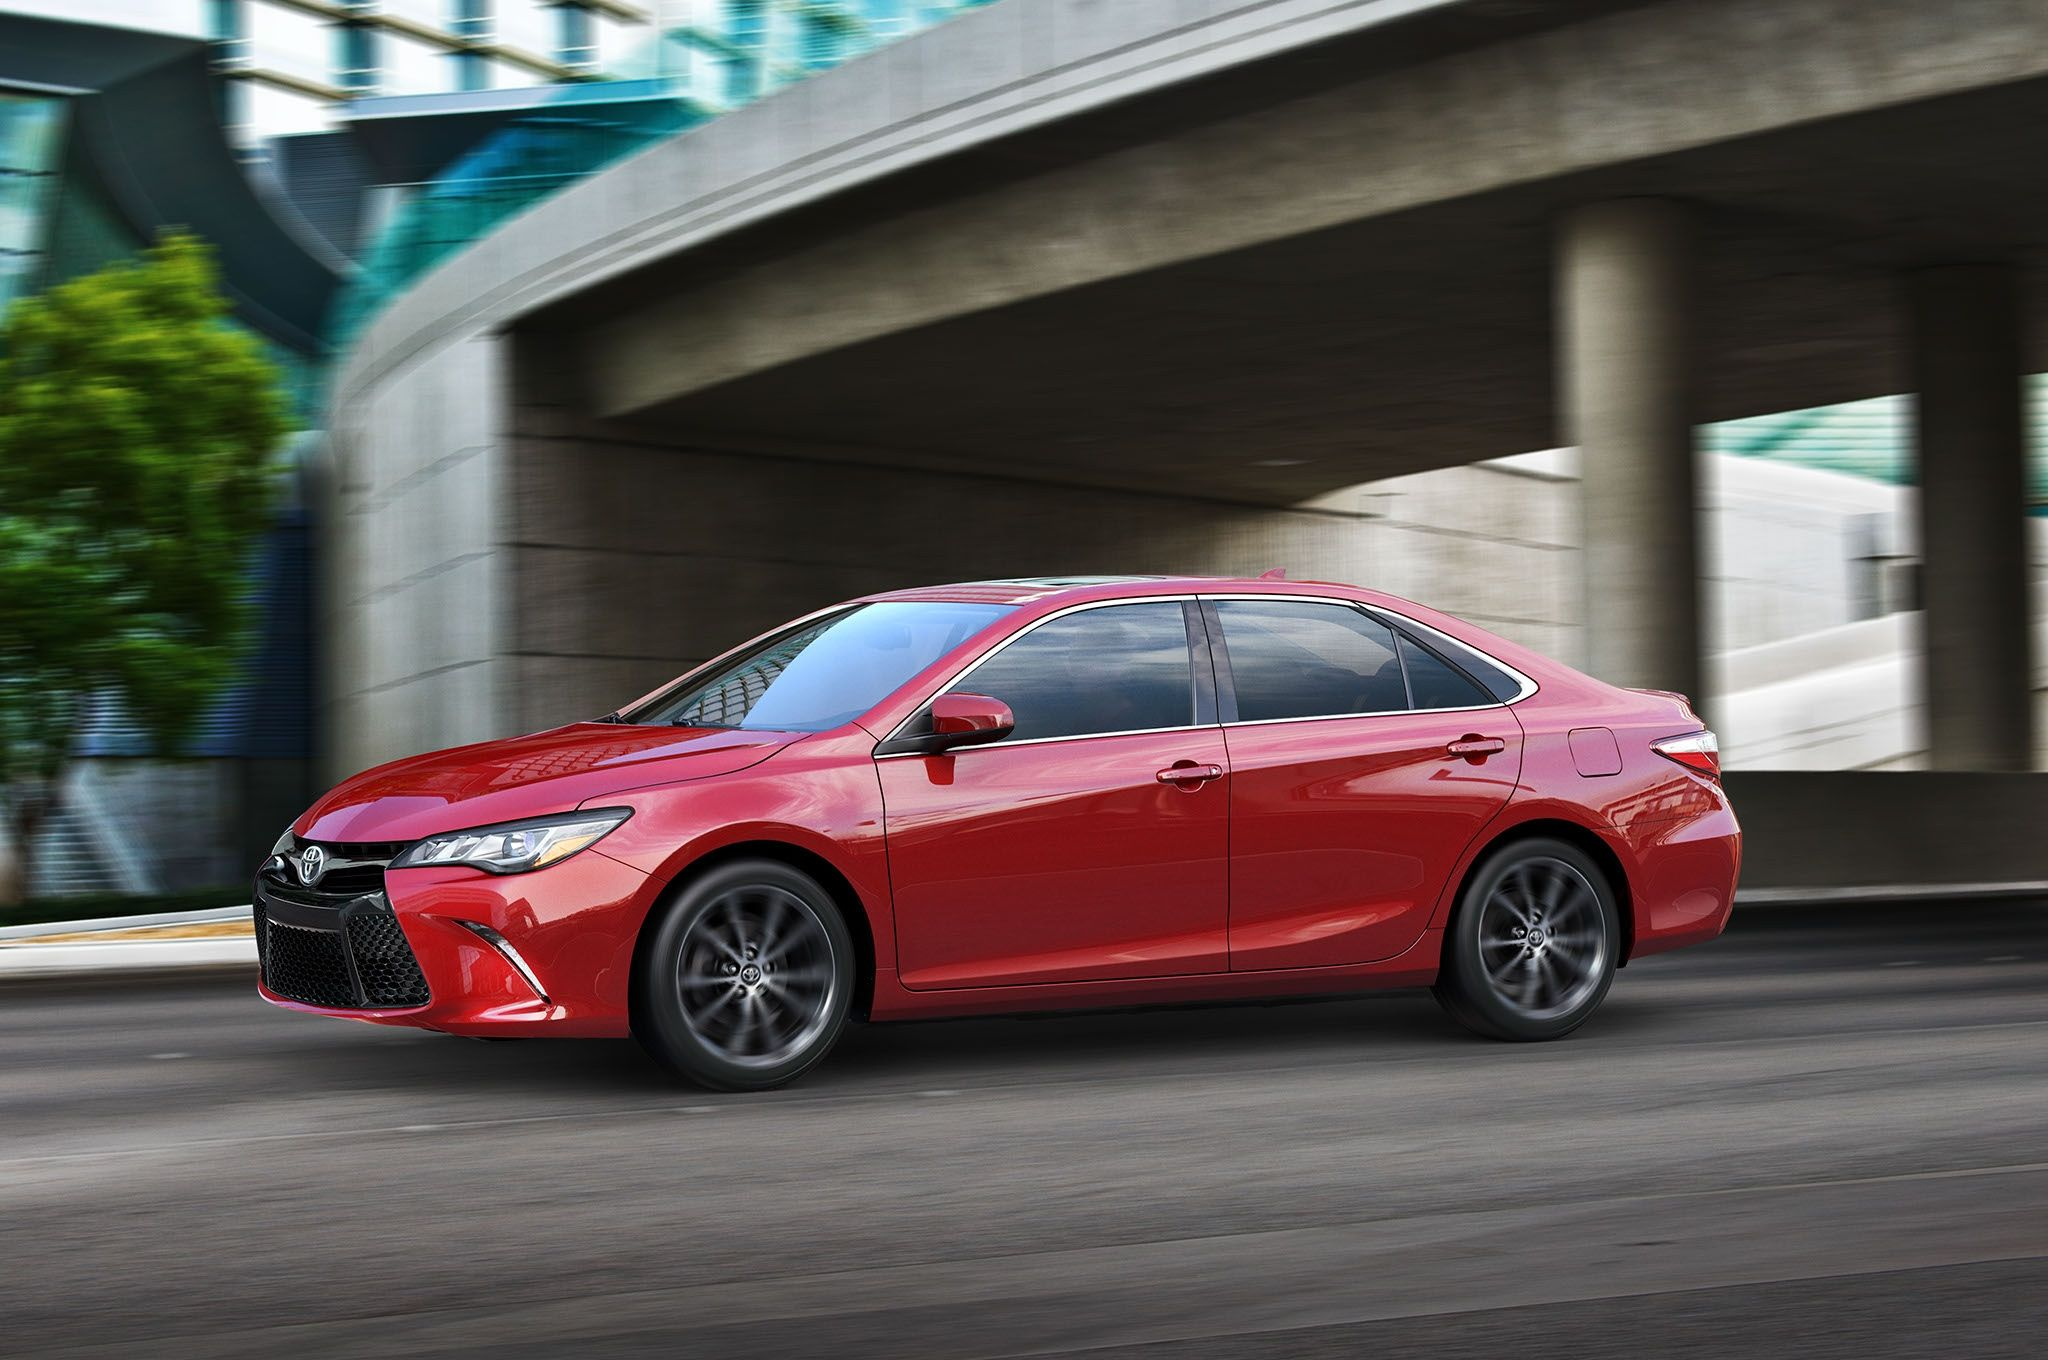 We could hear that the 2015 toyota camry hybrid will be offered with significant redesign but it seams that only few changes will be offered when the new